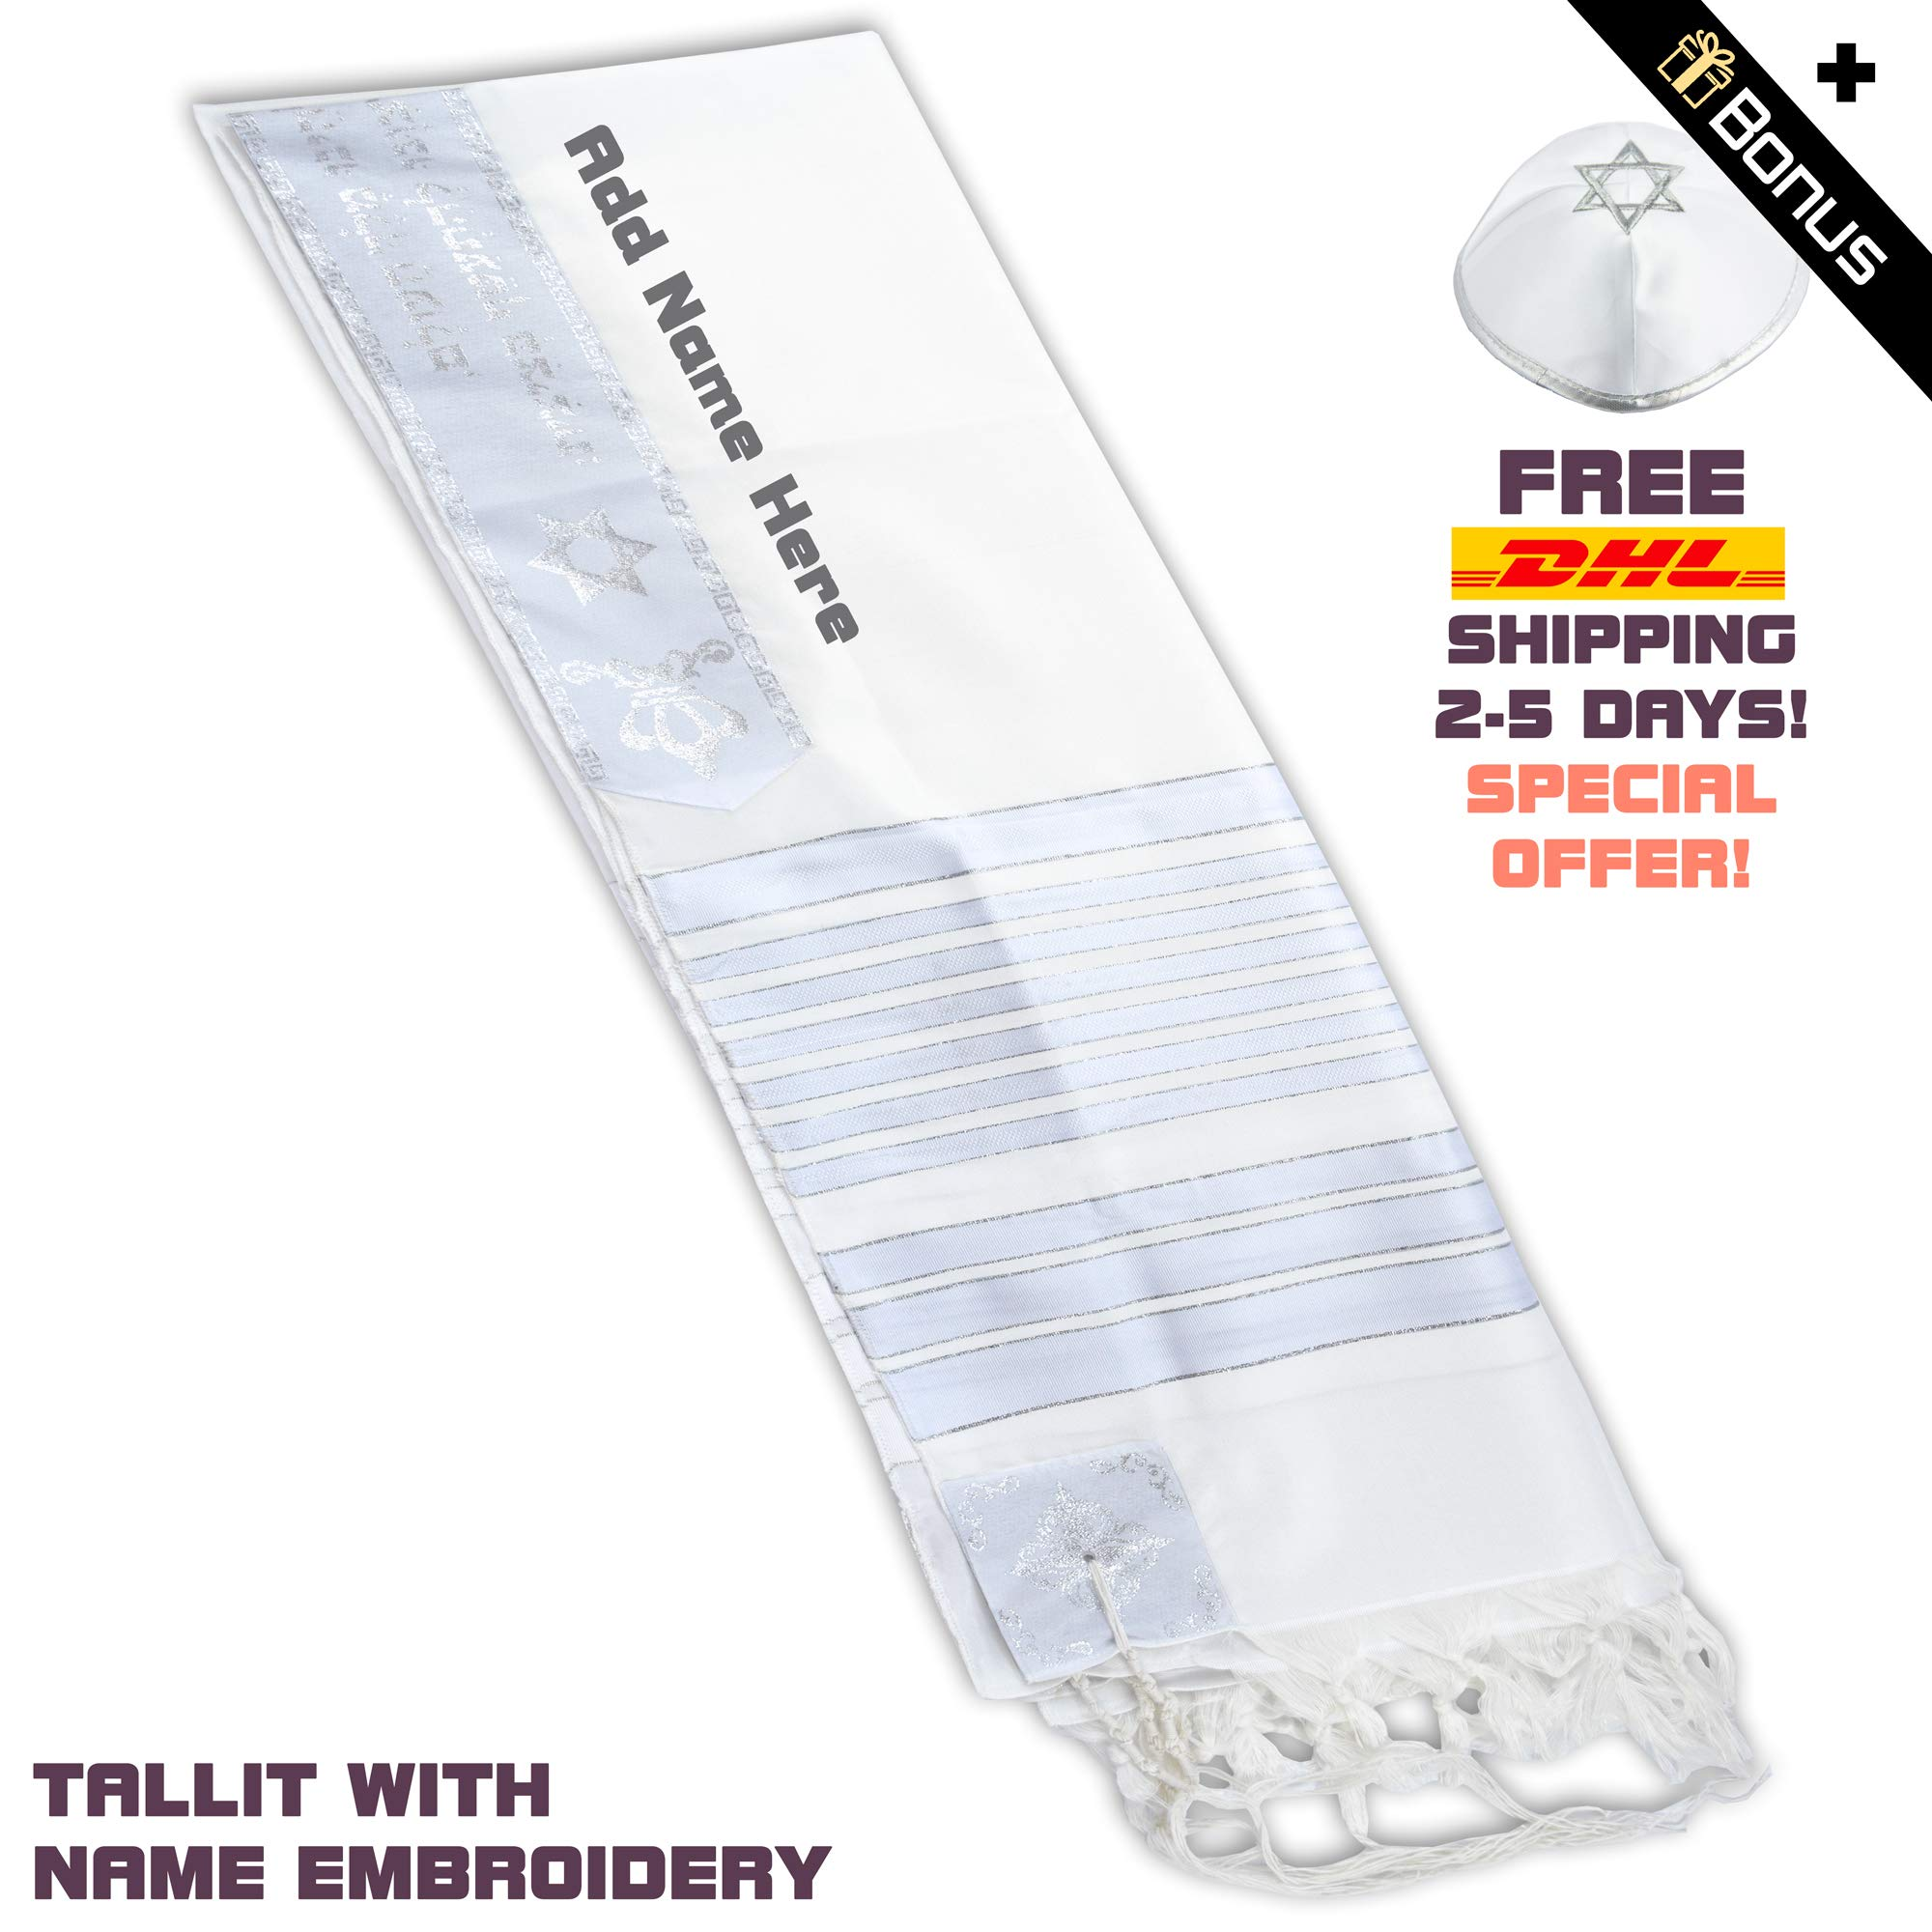 ateret yudaica Personal Design Tallit Prayer Shawl, Size - 43inch/63inch - 45, White & Silver, Made in Israel, Soft Acrylic Tallit with Bracha by ateret yudaica